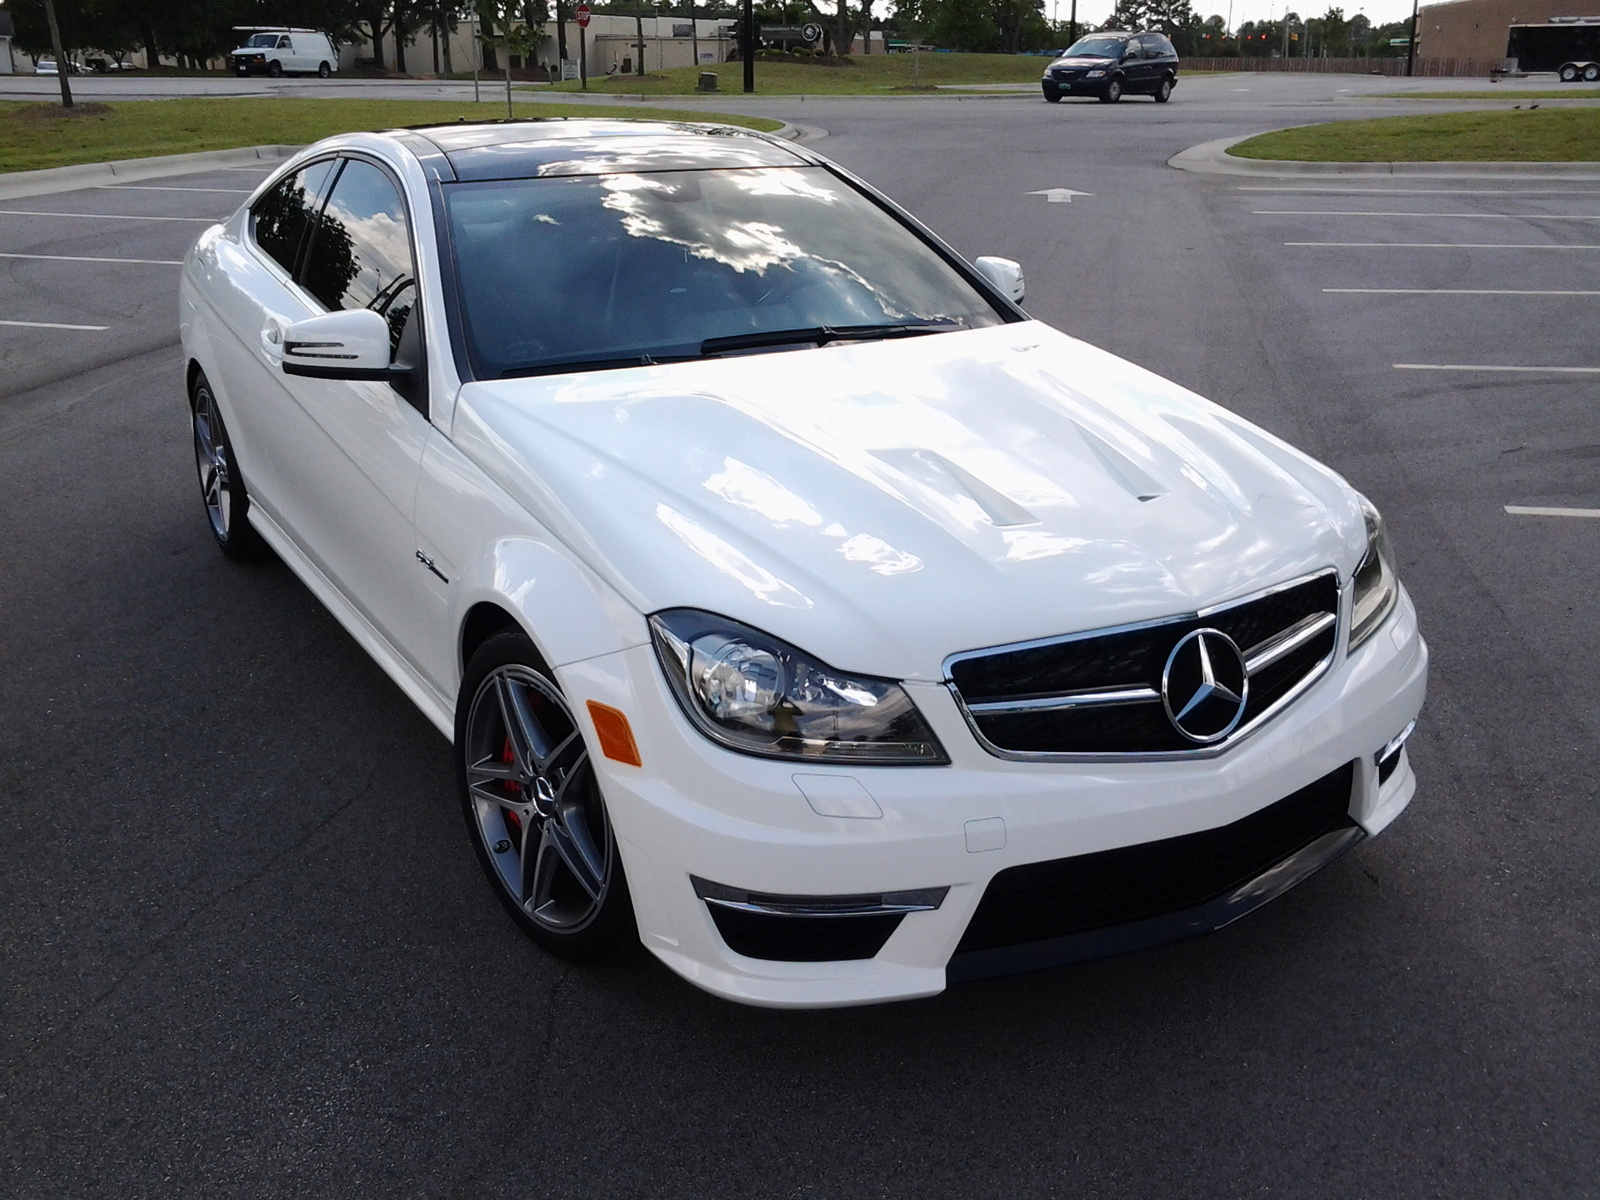 2013 mercedes benz c class pictures cargurus for Mercedes benz 2013 c300 price